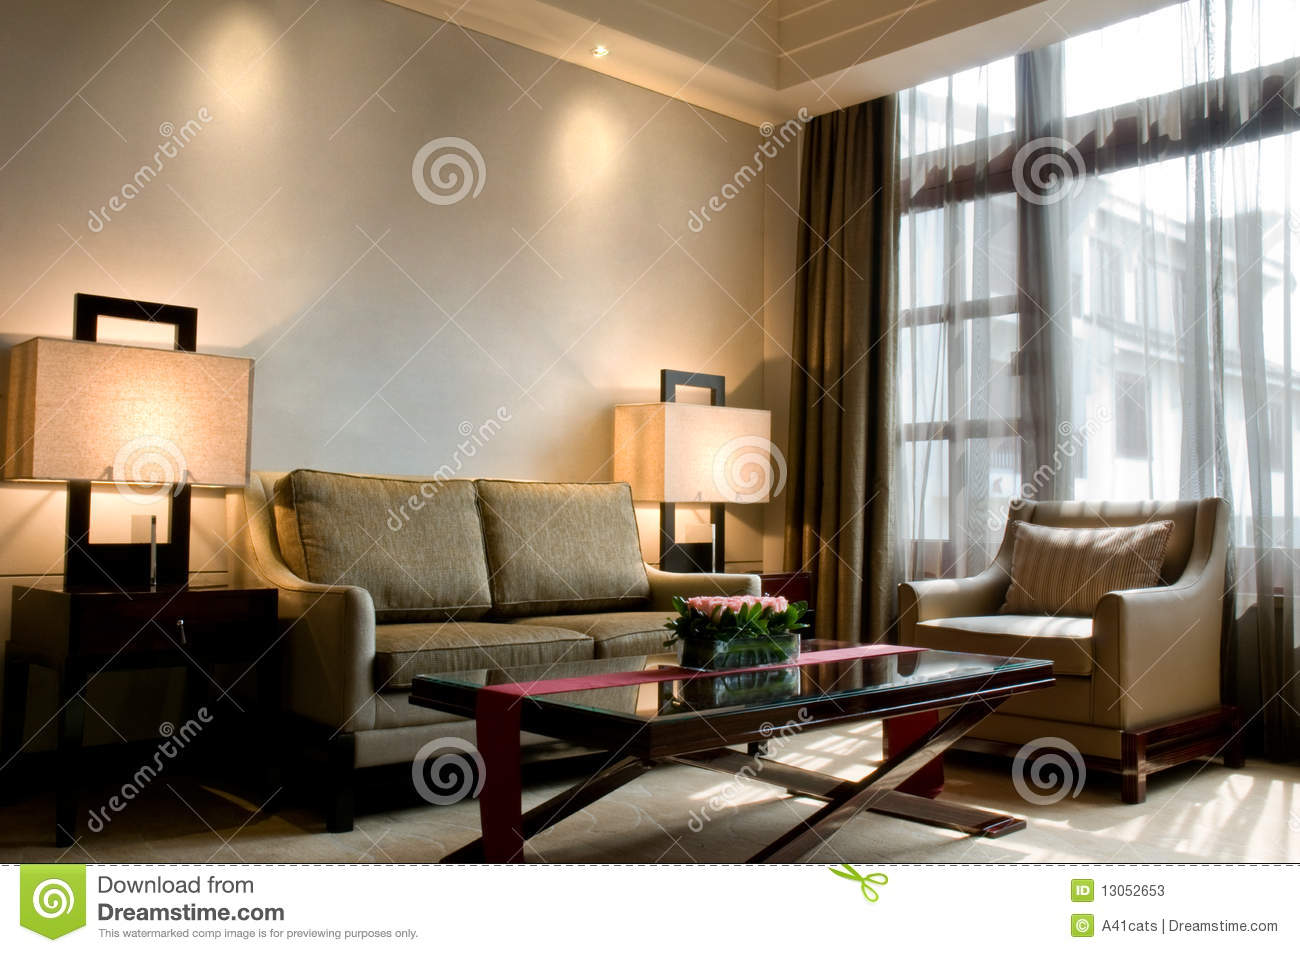 Living Room Of A Luxury 5 Star Hotel Suite Stock Photos